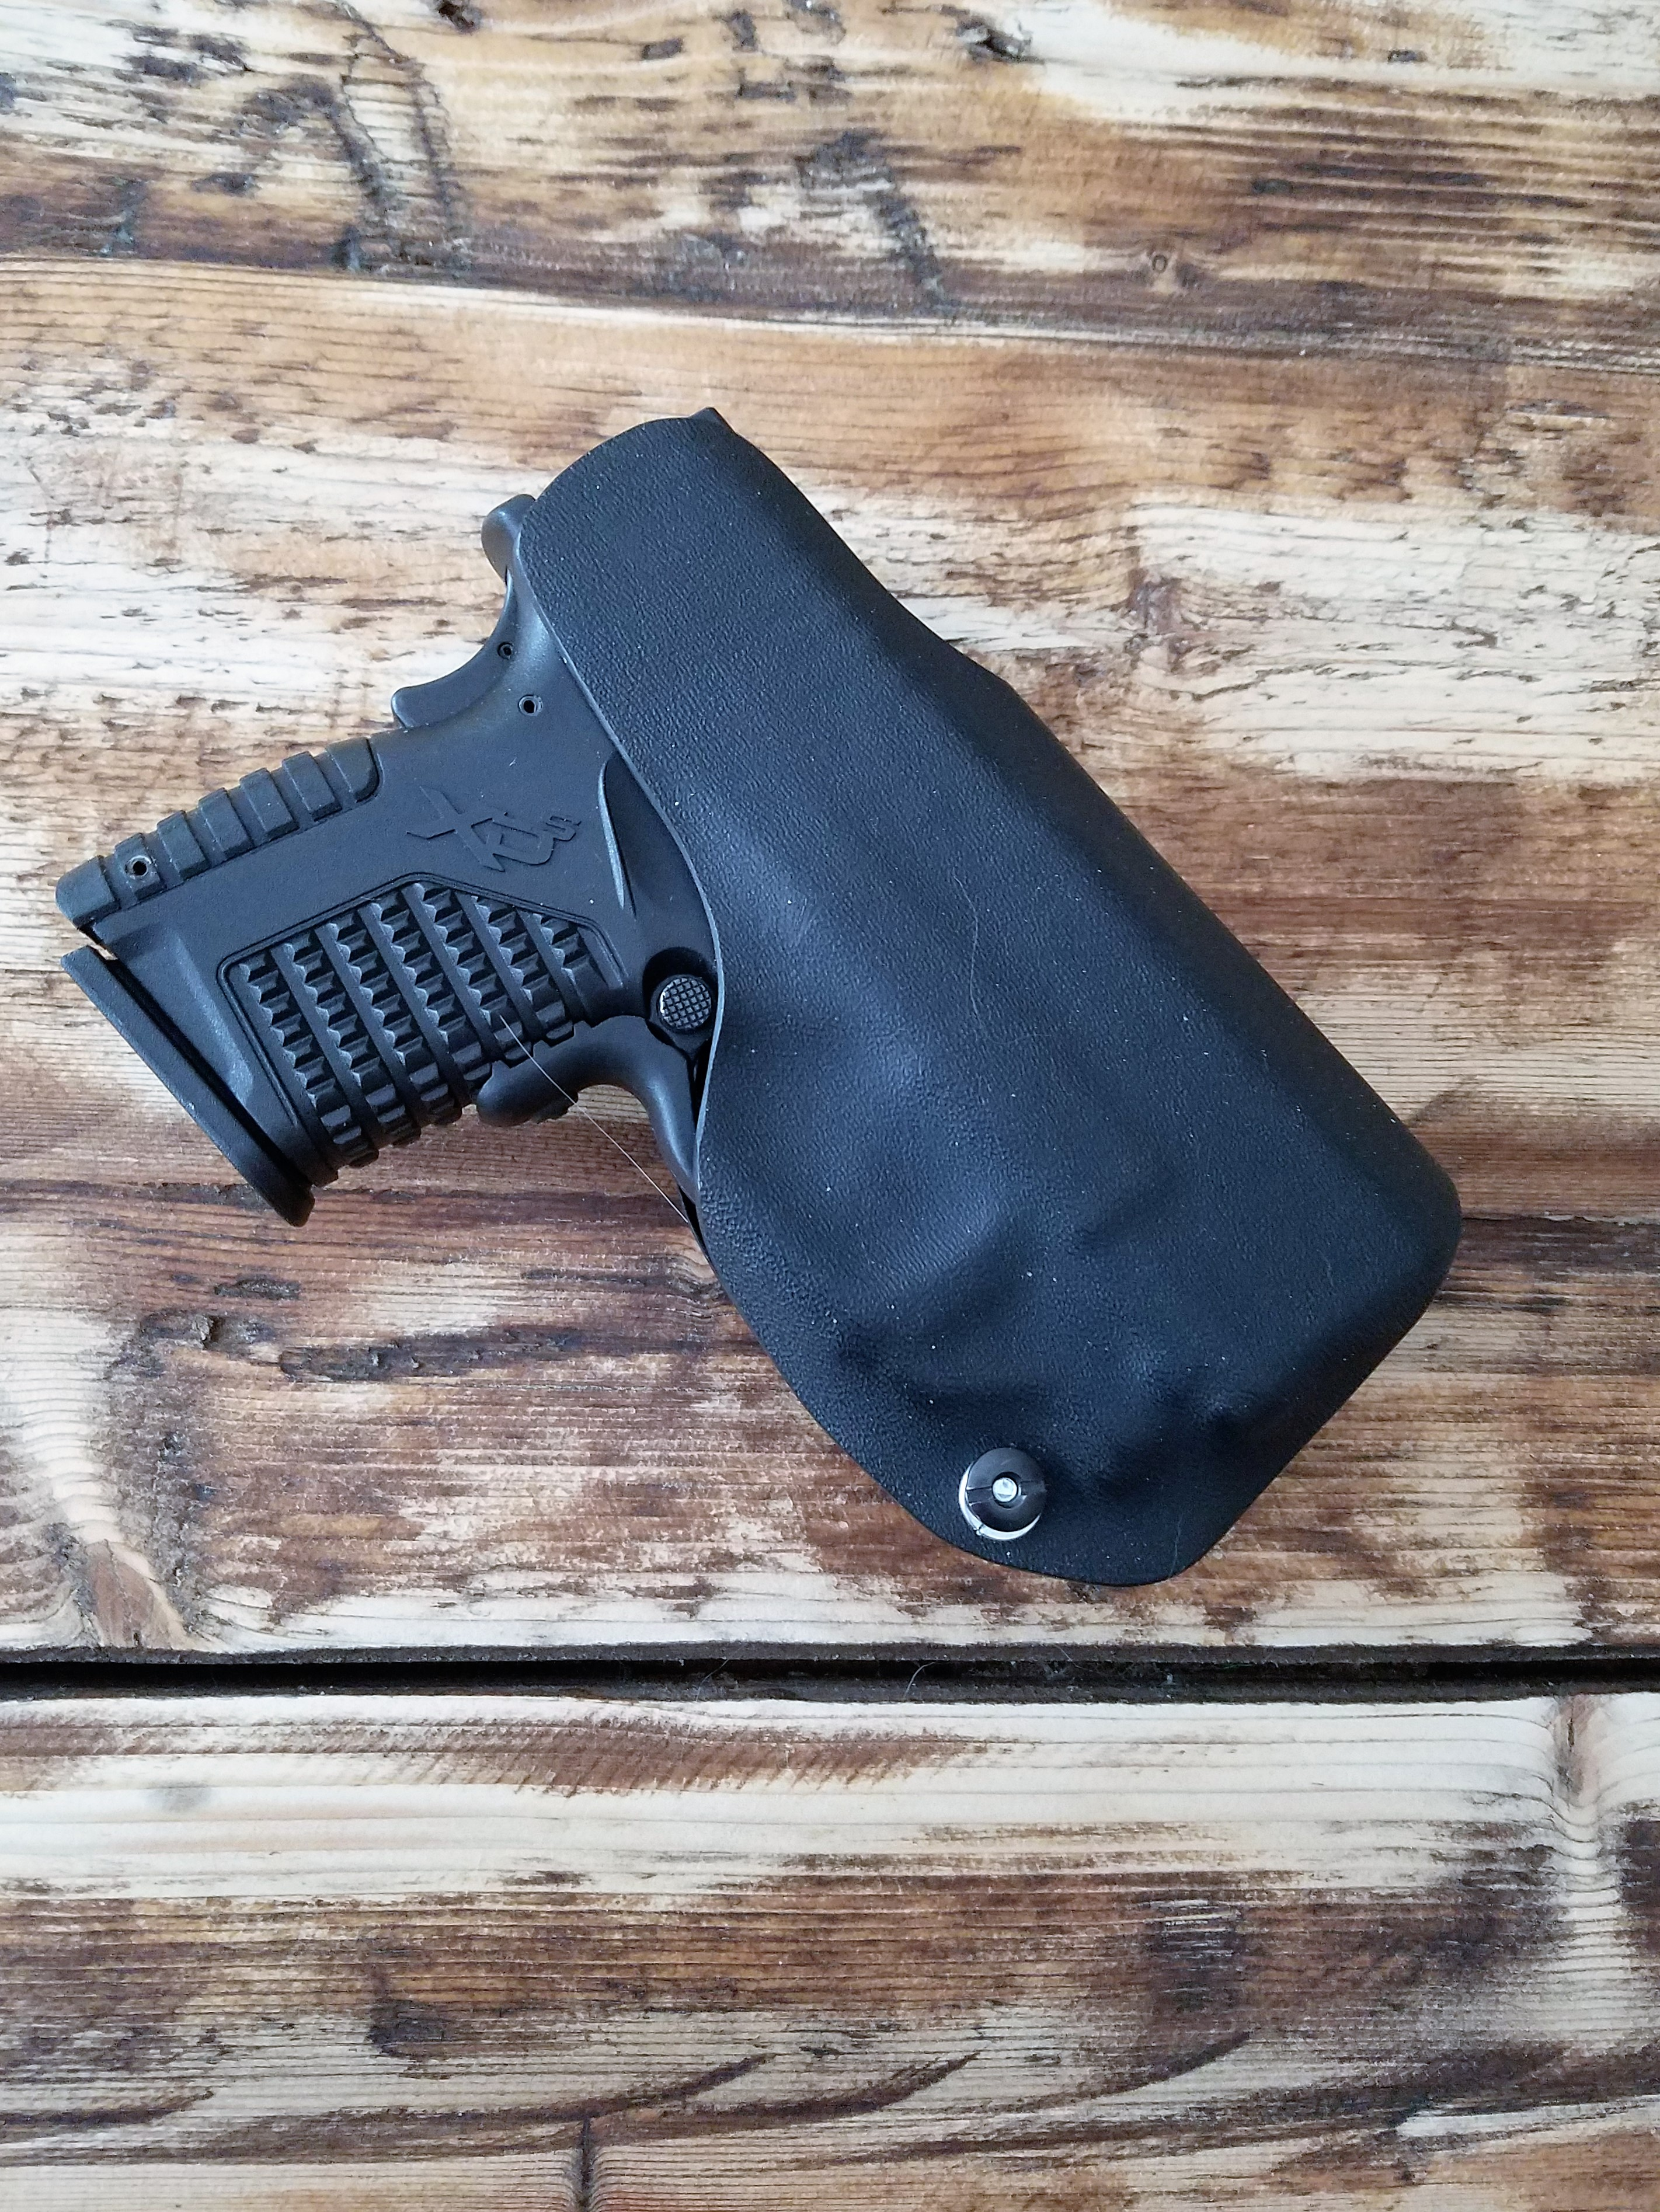 Clinger Stingray IWB holster, or other suggestions